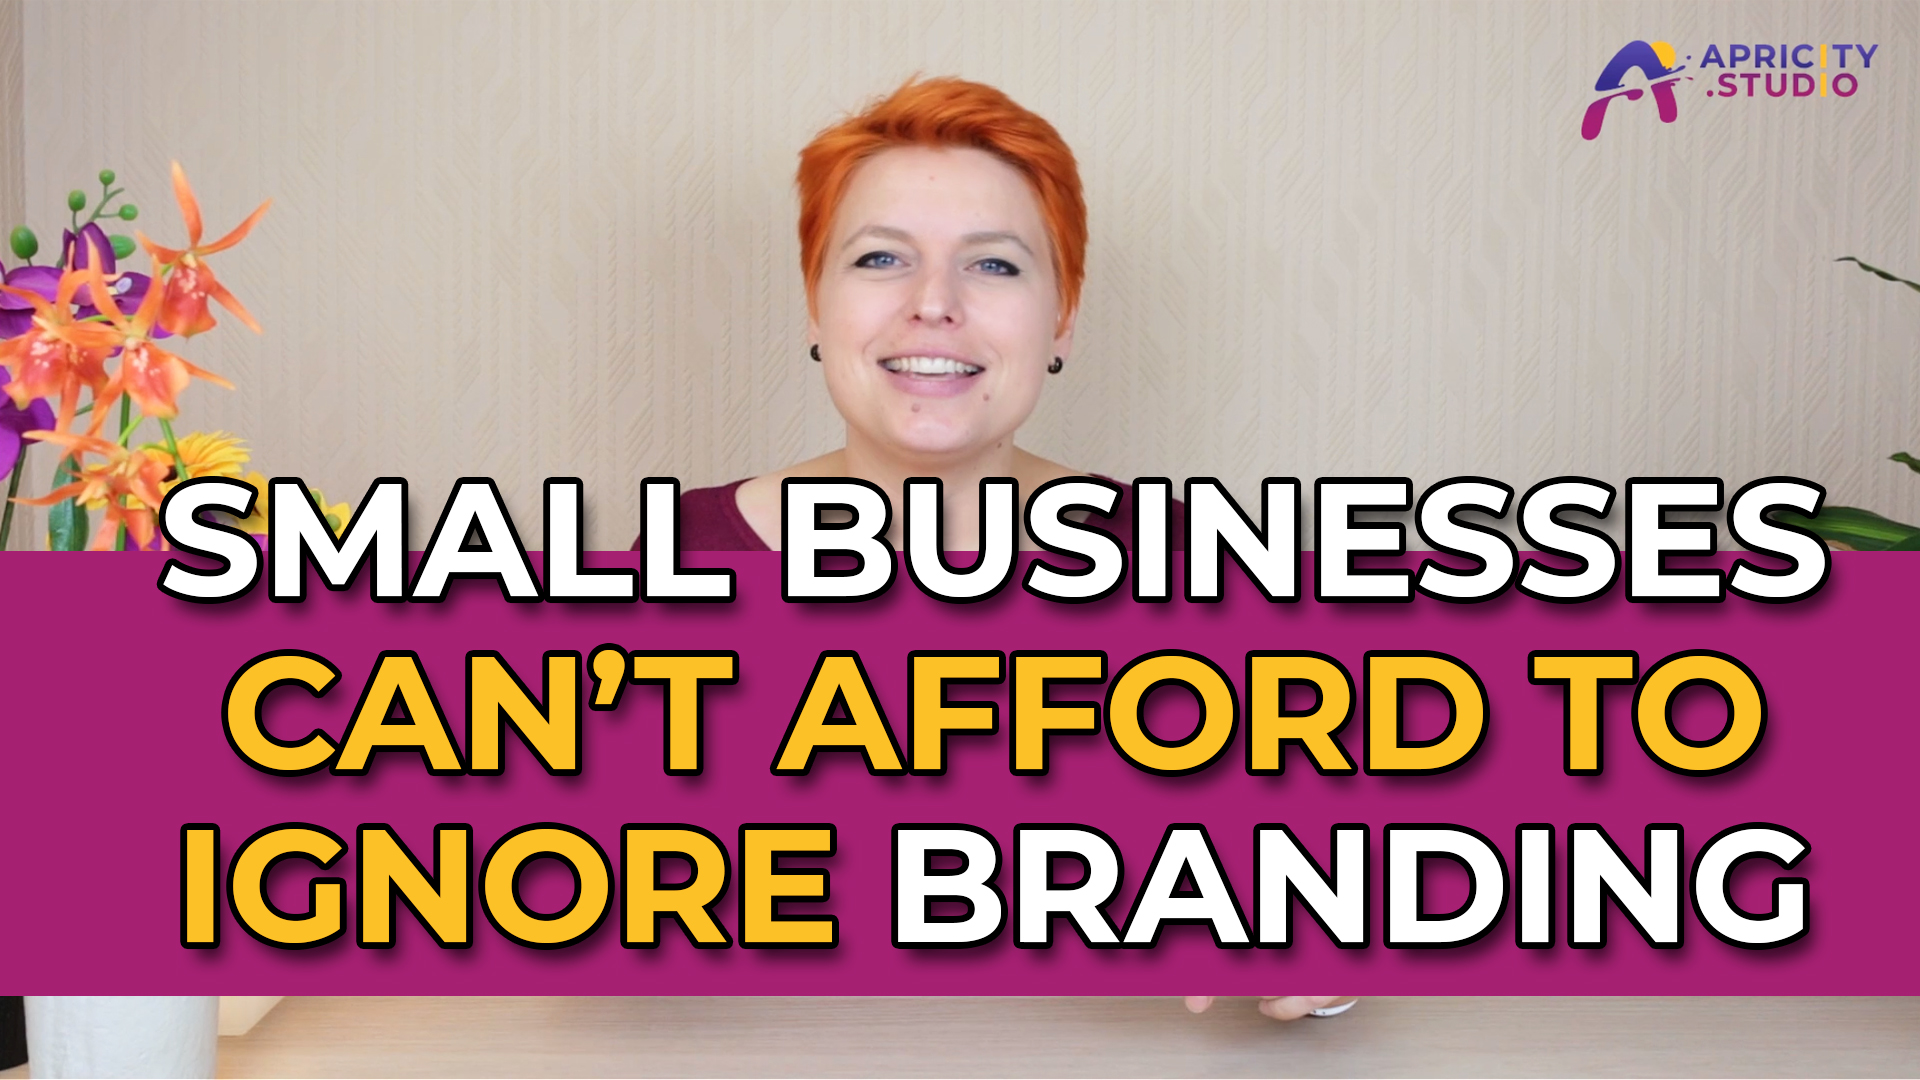 VLOG – Why Small Businesses Can't Afford to Ignore Branding